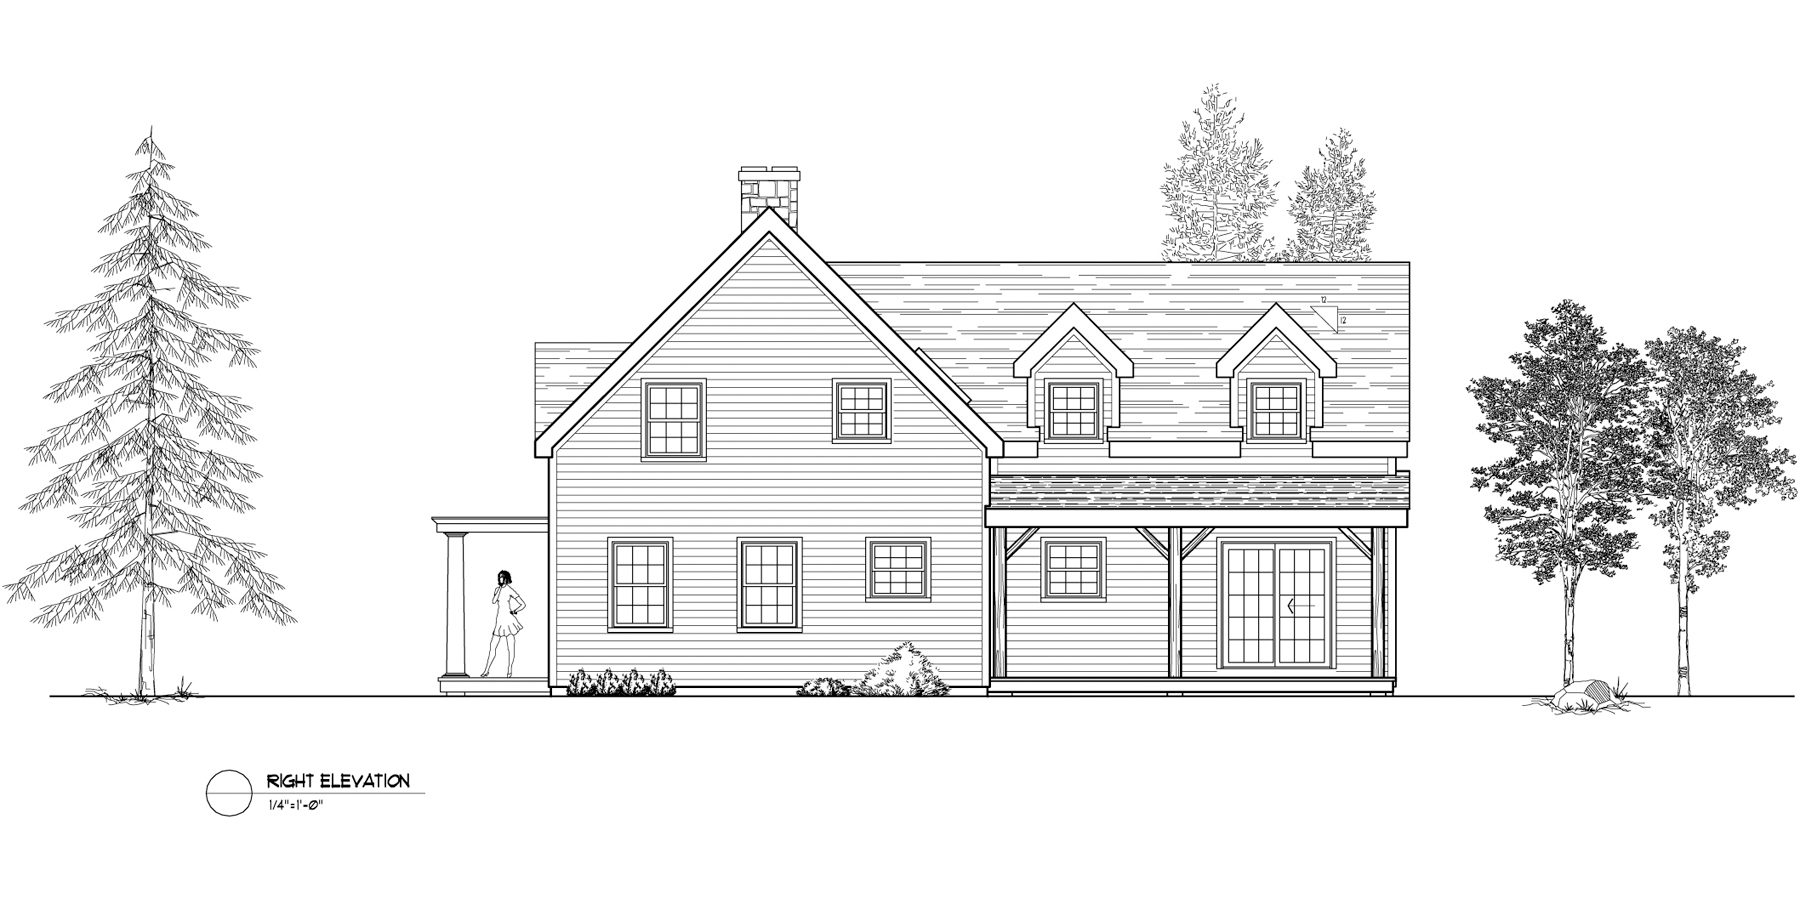 Normerica Timber Frames, House Plan, The Niagara 3539, Right Elevation